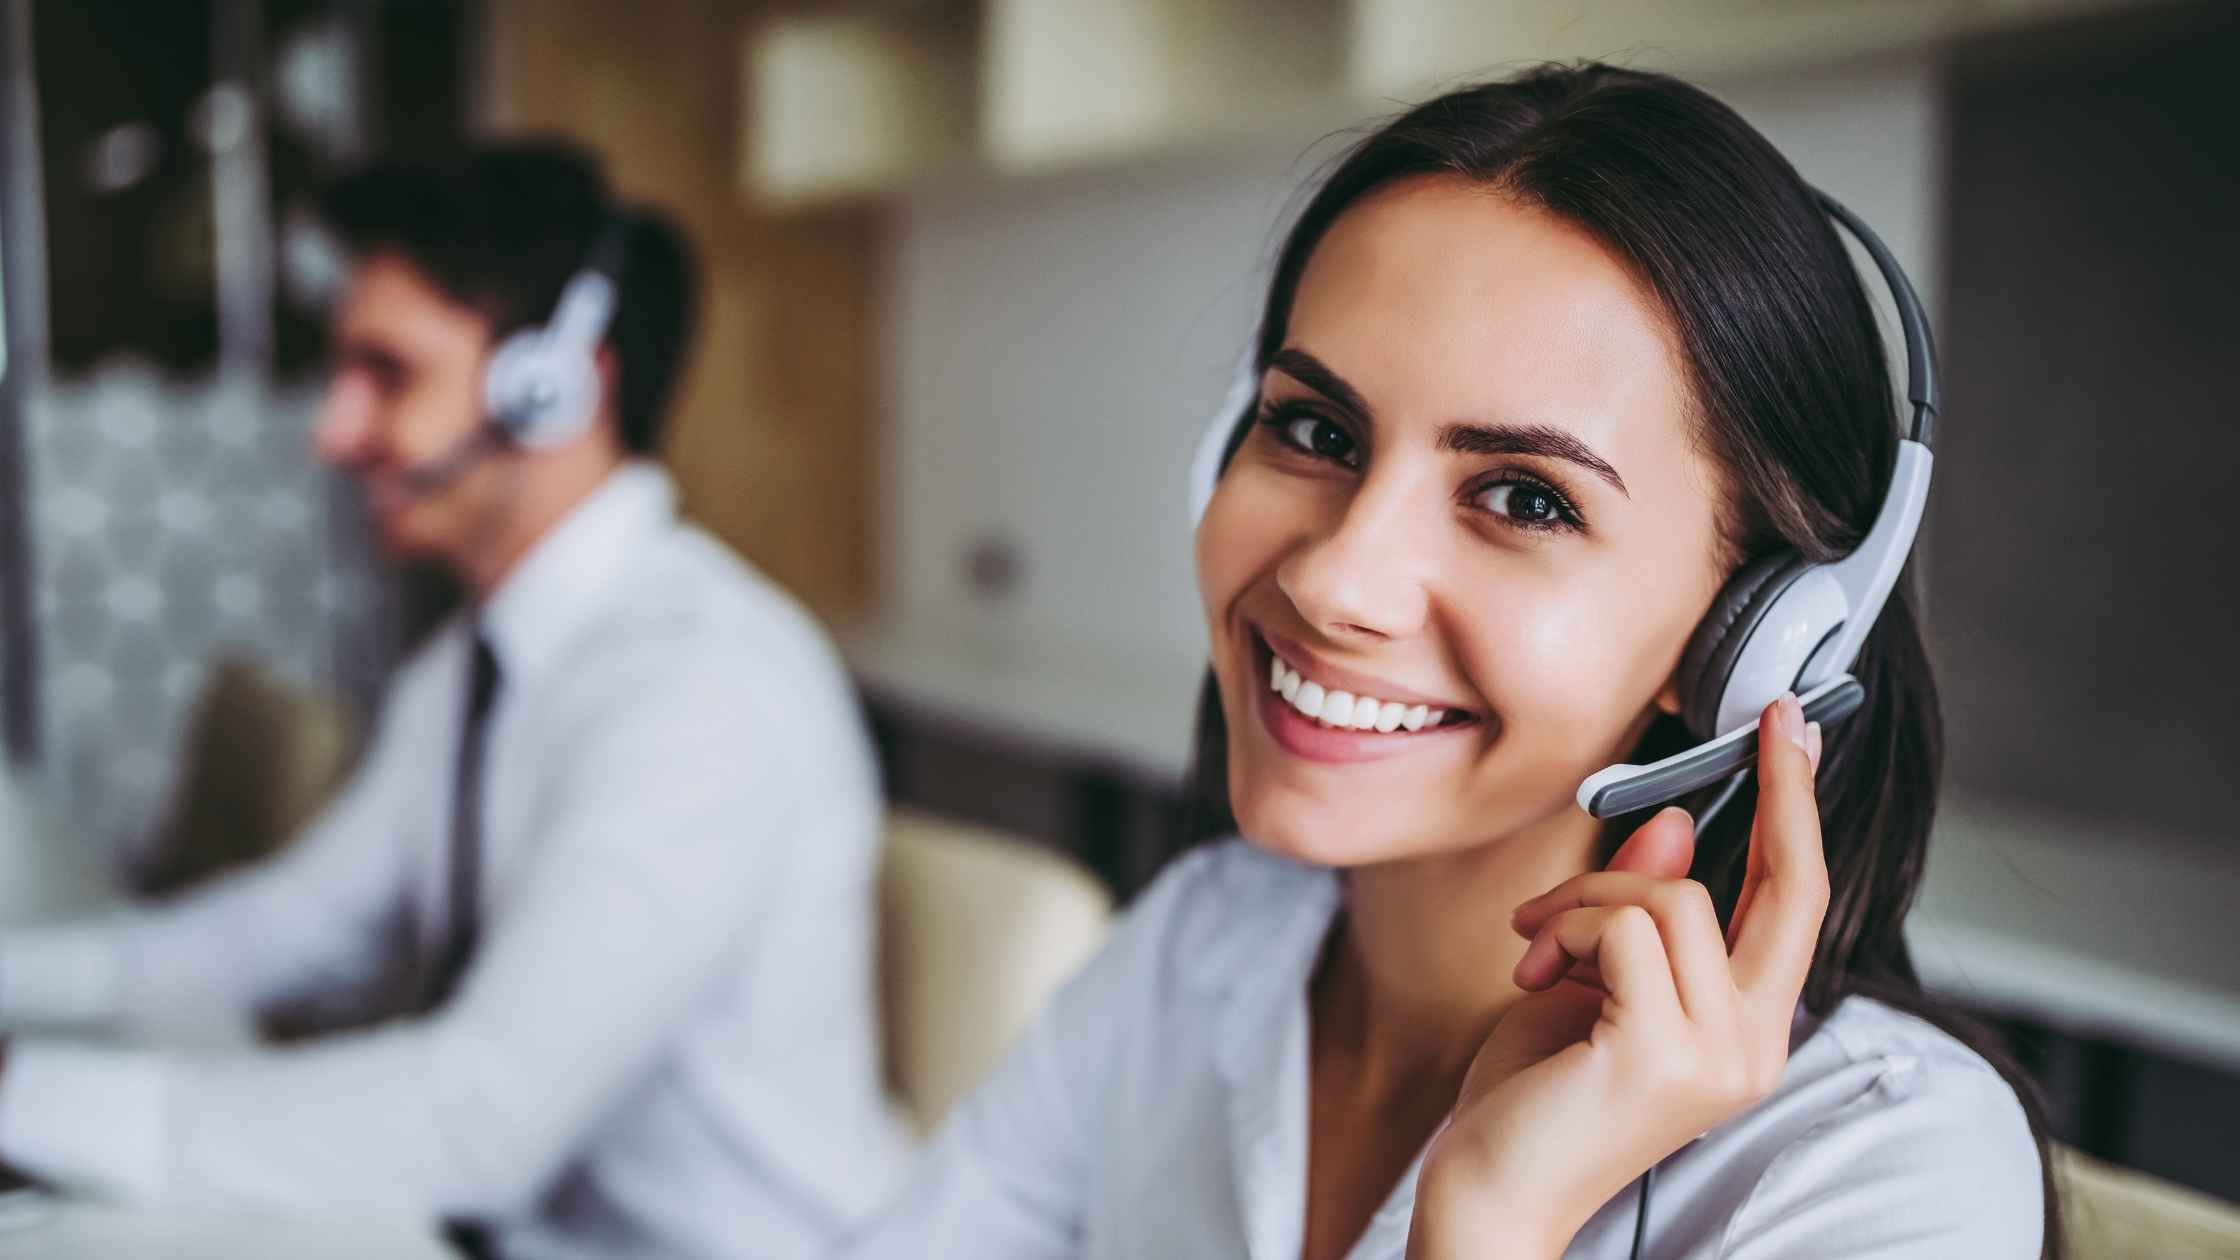 A Comprehensive Guide to Telephone Answering Services: How To Choose, The Benefits & More